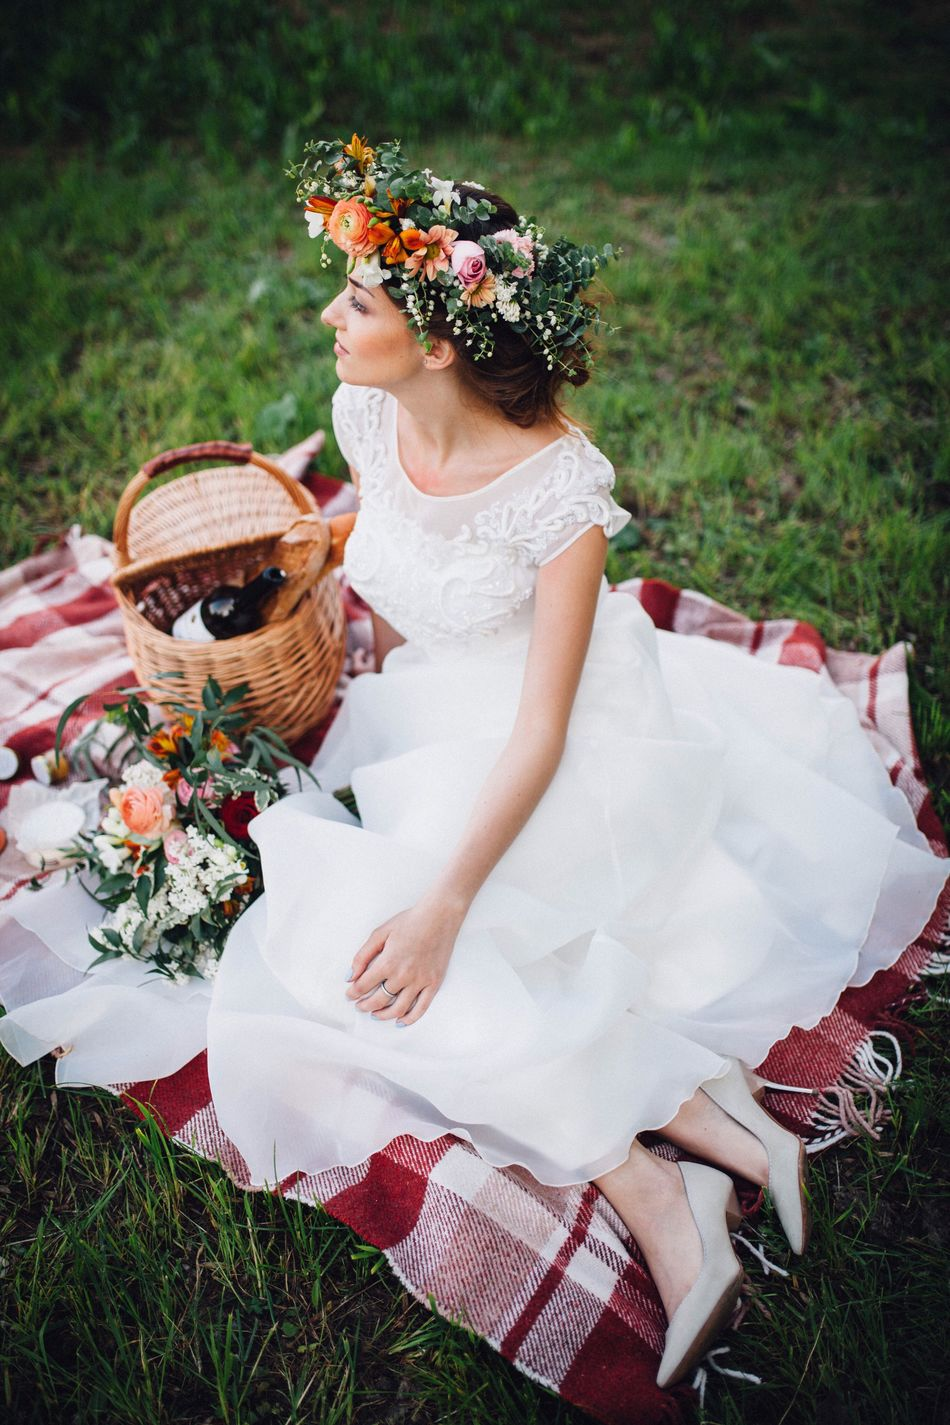 Beautiful stock photos of wedding, one young woman only, one woman only, traditional clothing, women